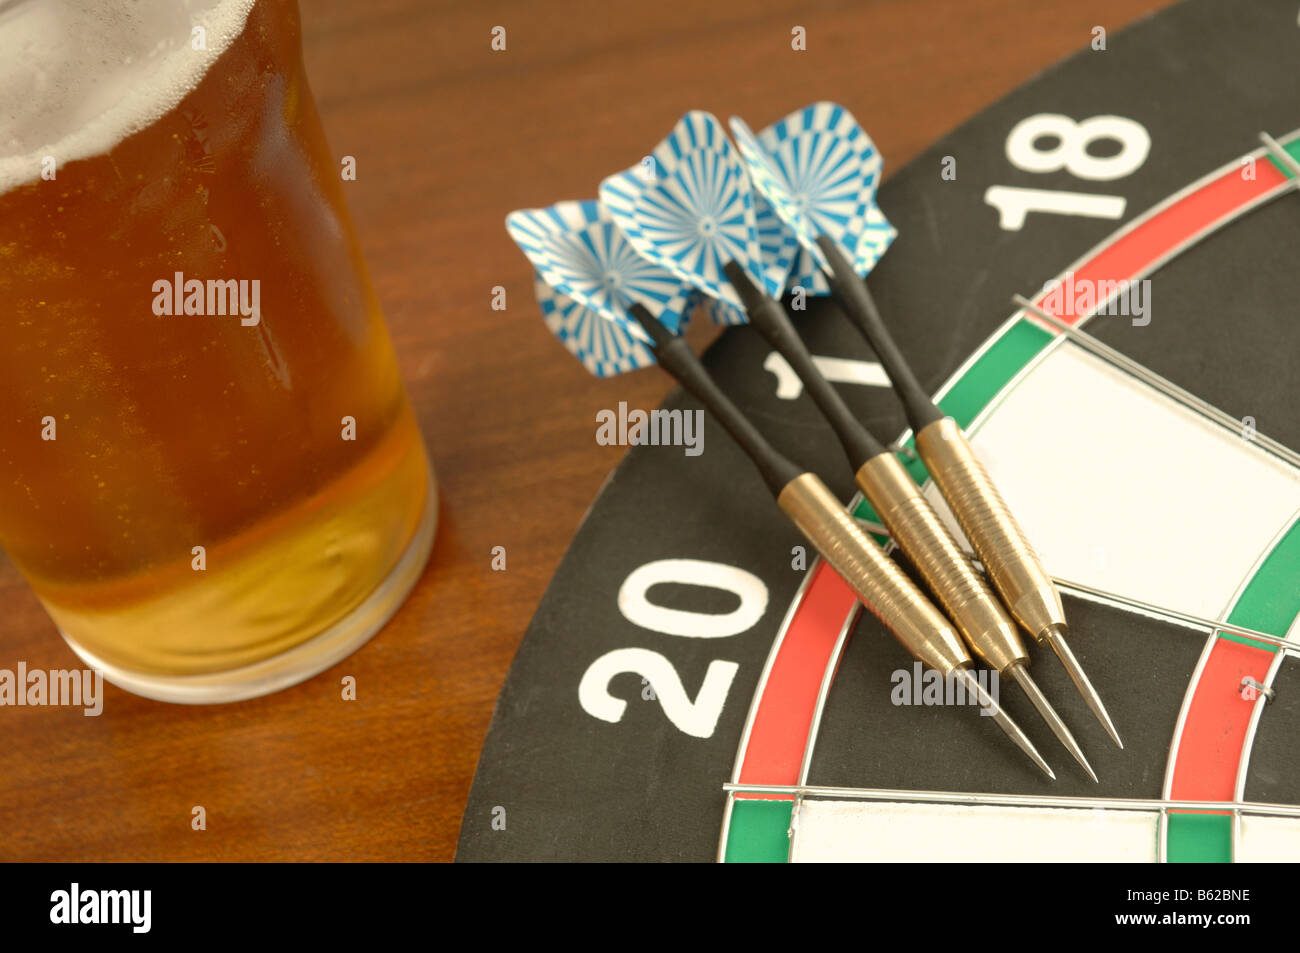 a selection of pub games including darts and dominoes - Stock Image